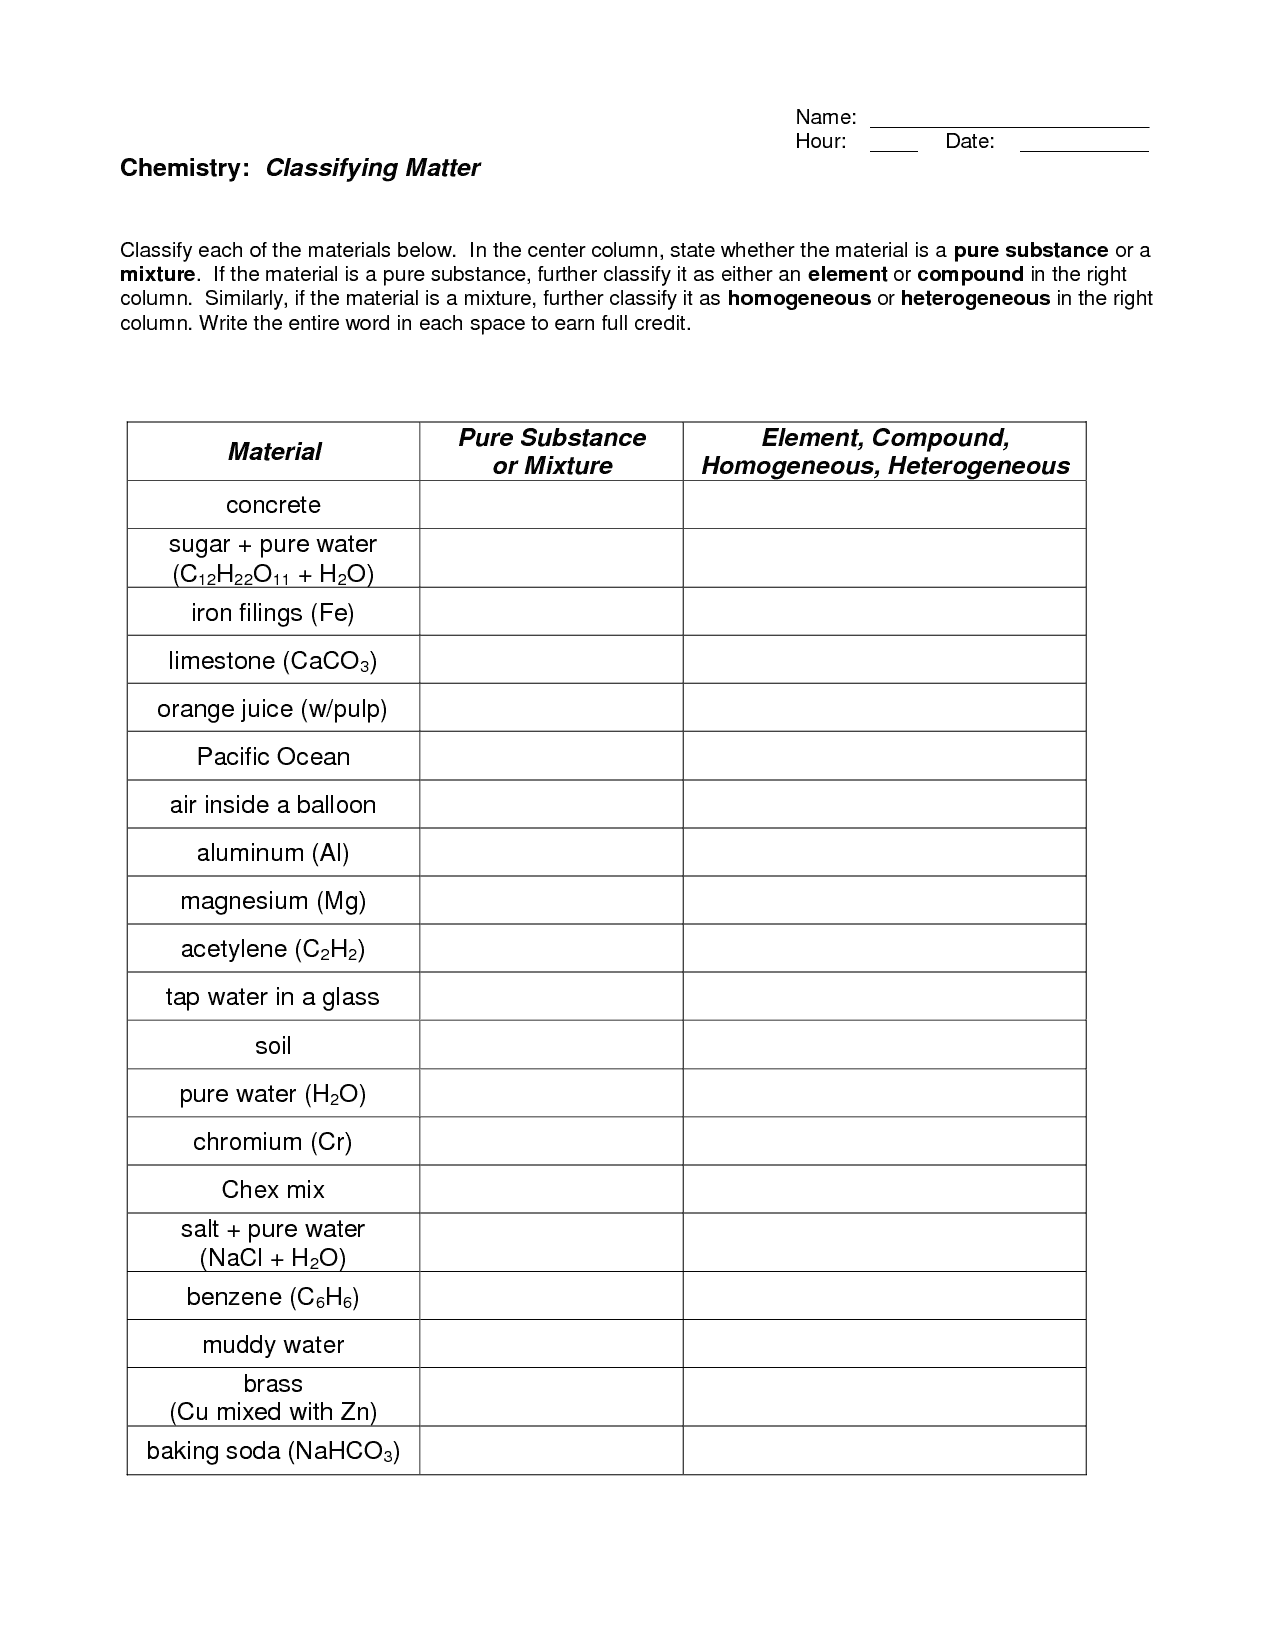 Classification Of Matter Self Study Module You Are